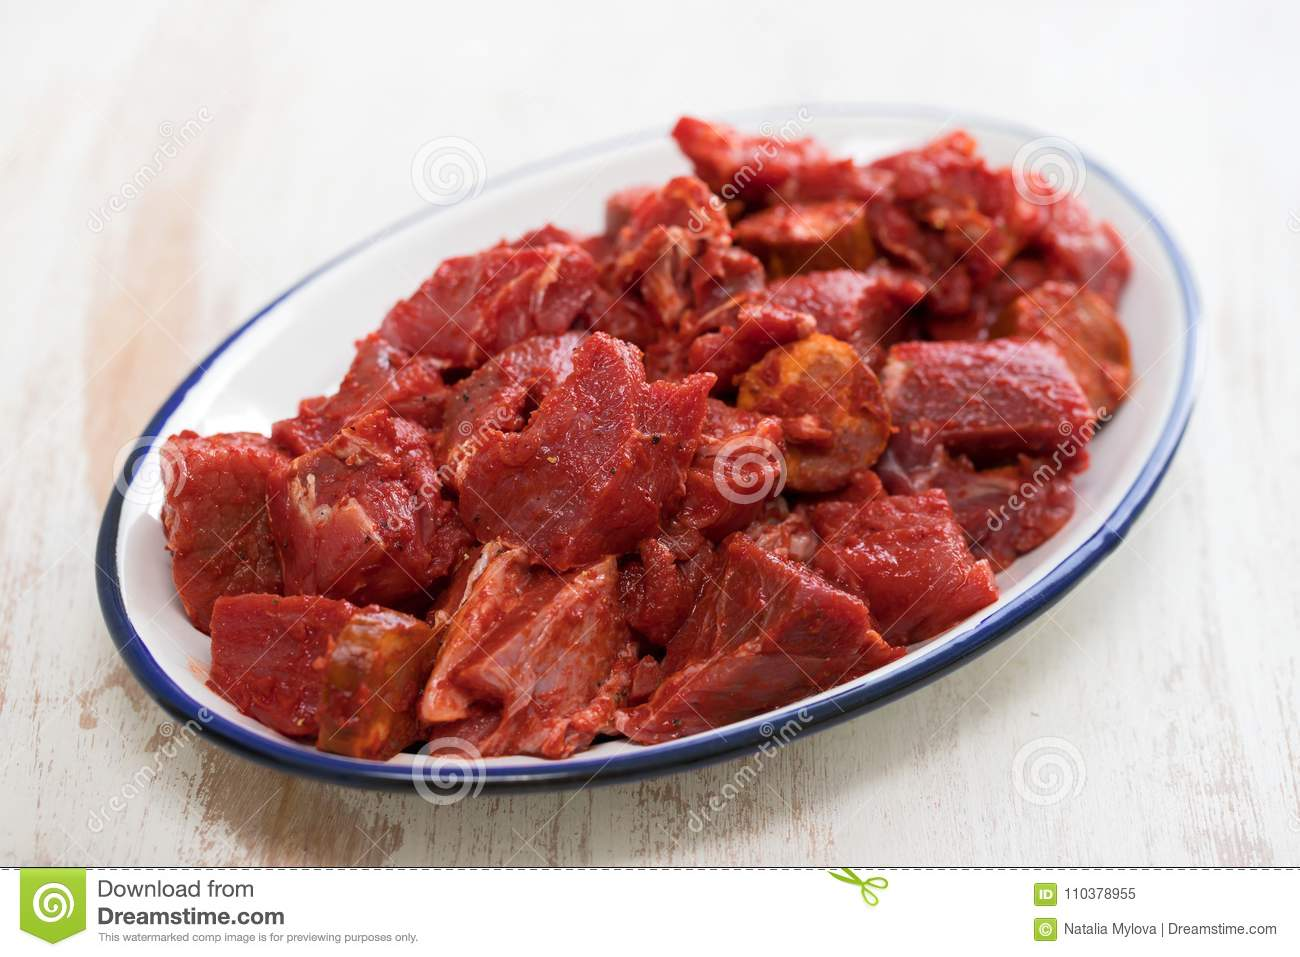 Raw Meat With Sauce On Dish Stock Image - Image of sliced